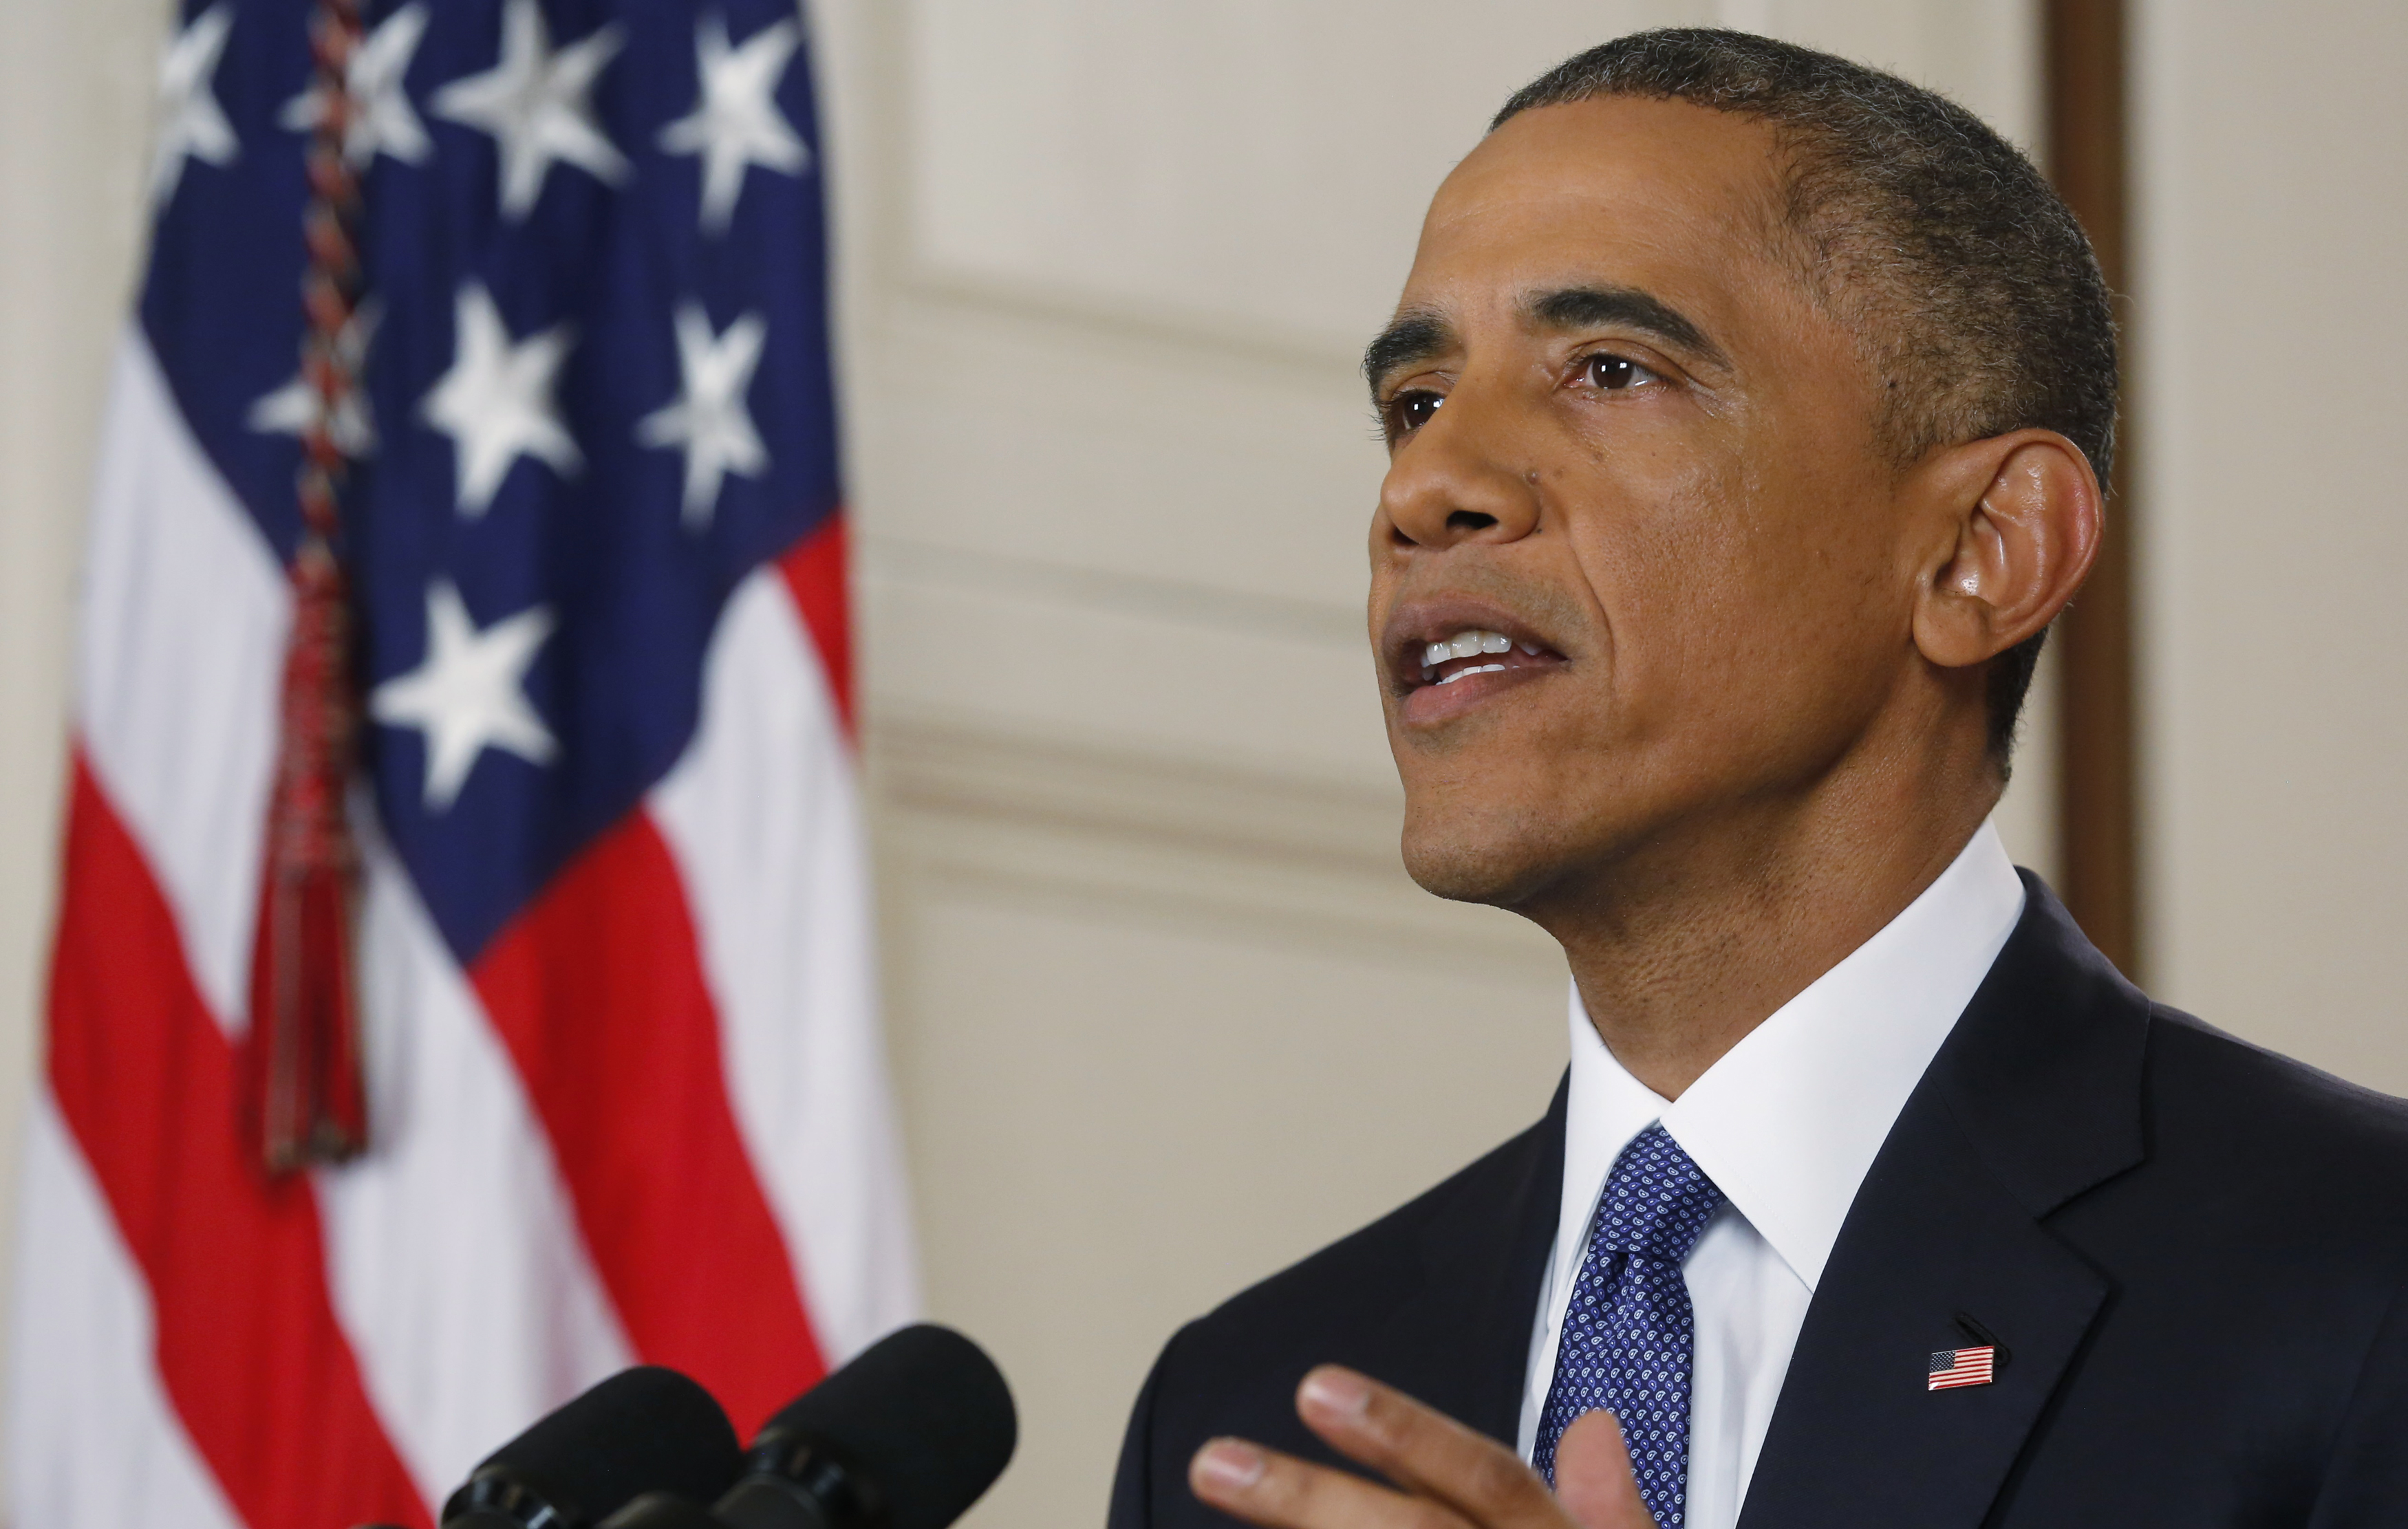 President Obama announced executive action on immigration policy during a nationally televised address from the White House on November 20, 2014. Obama outlined a plan to ease the threat of deportion for about 4.7 million undocumented immigrants.